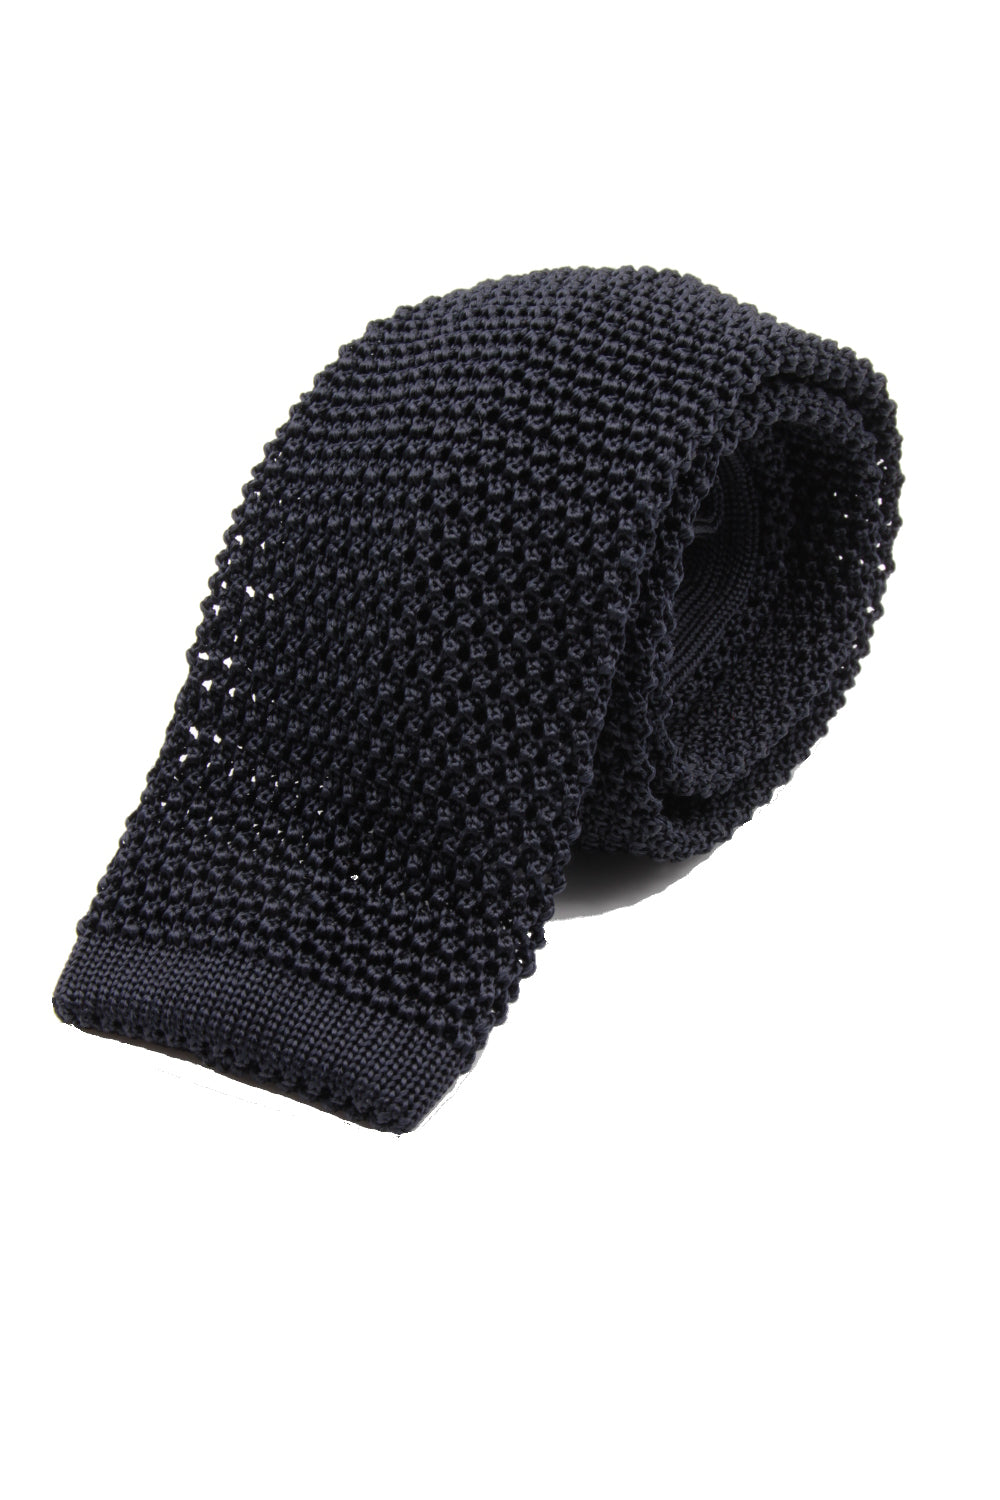 Dark Grey knitted tie